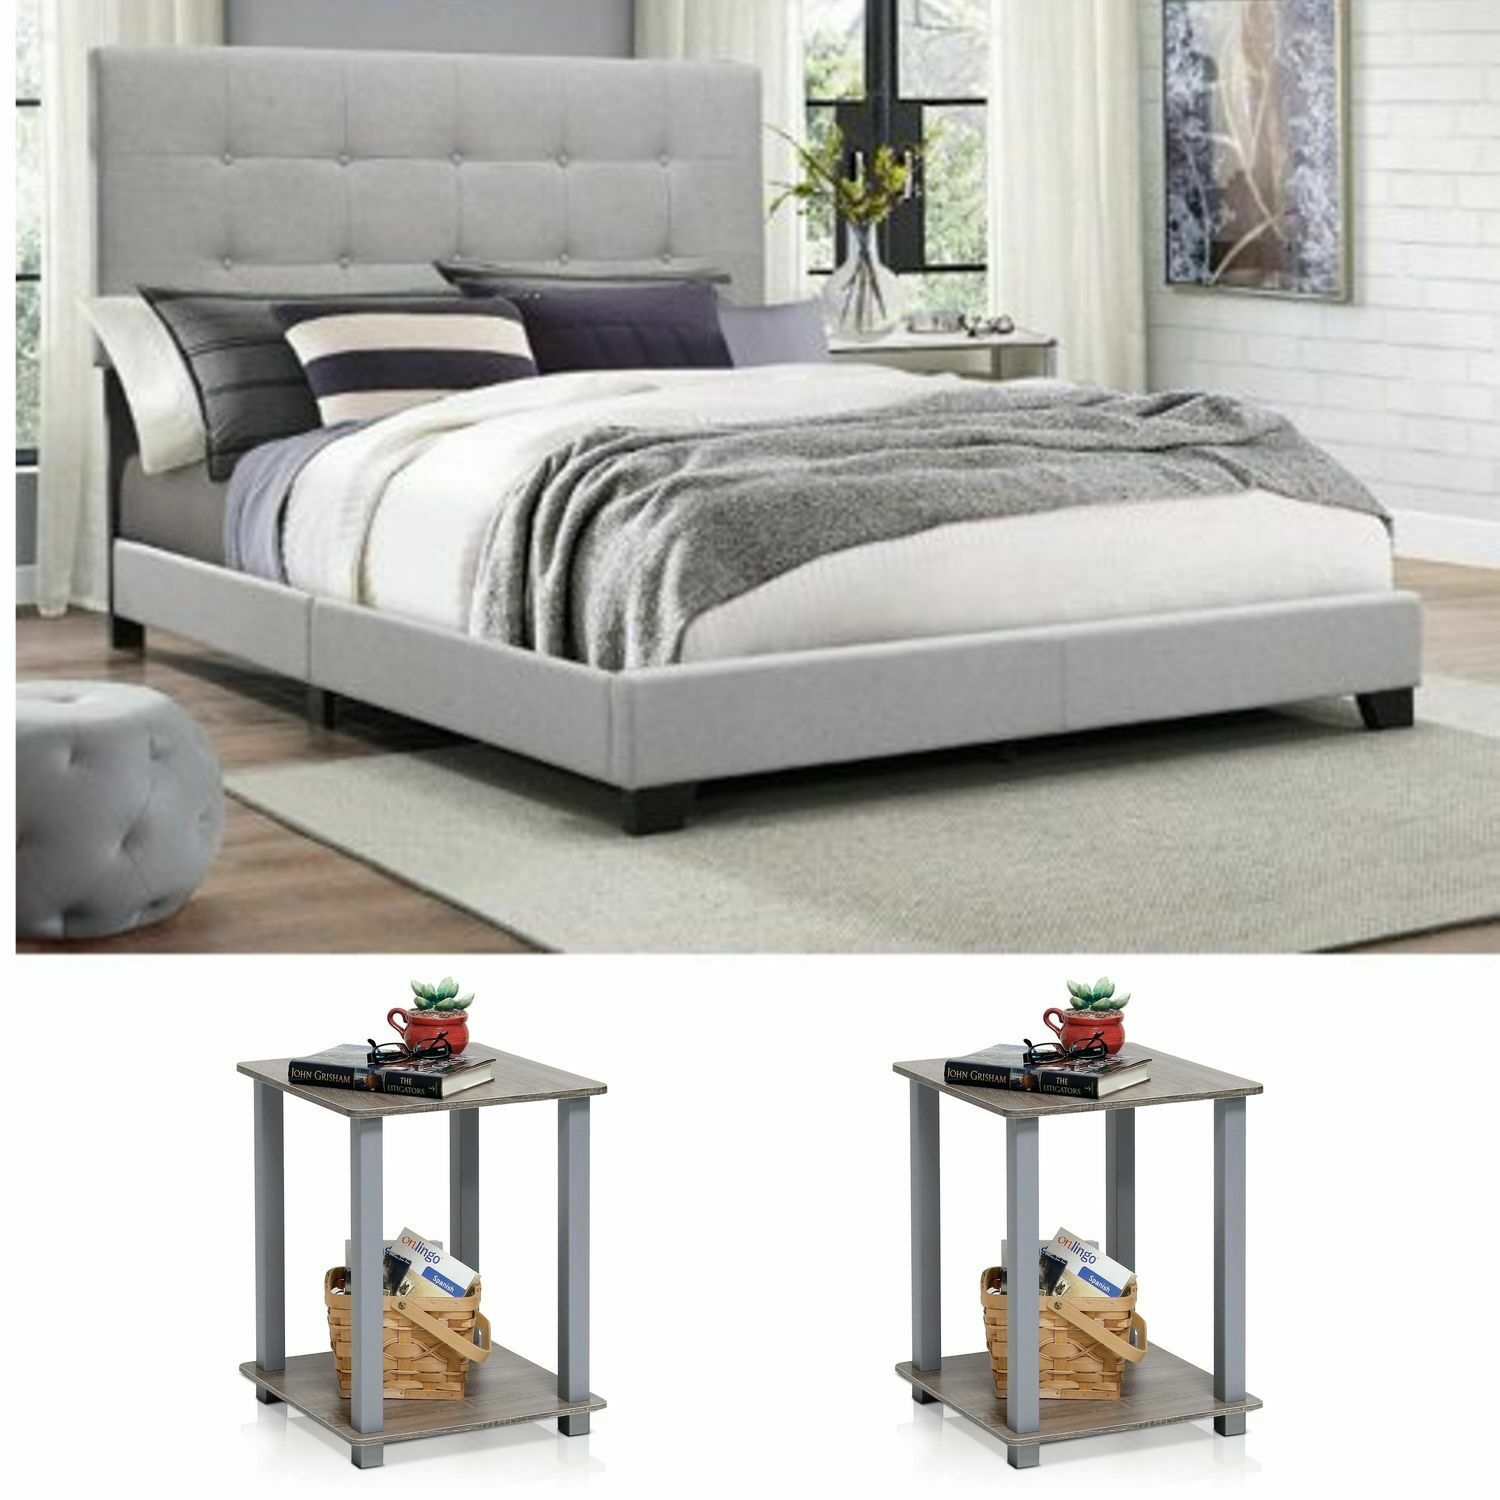 king size bedroom set grey modern furniture bed headboard wood fabric 3 piece